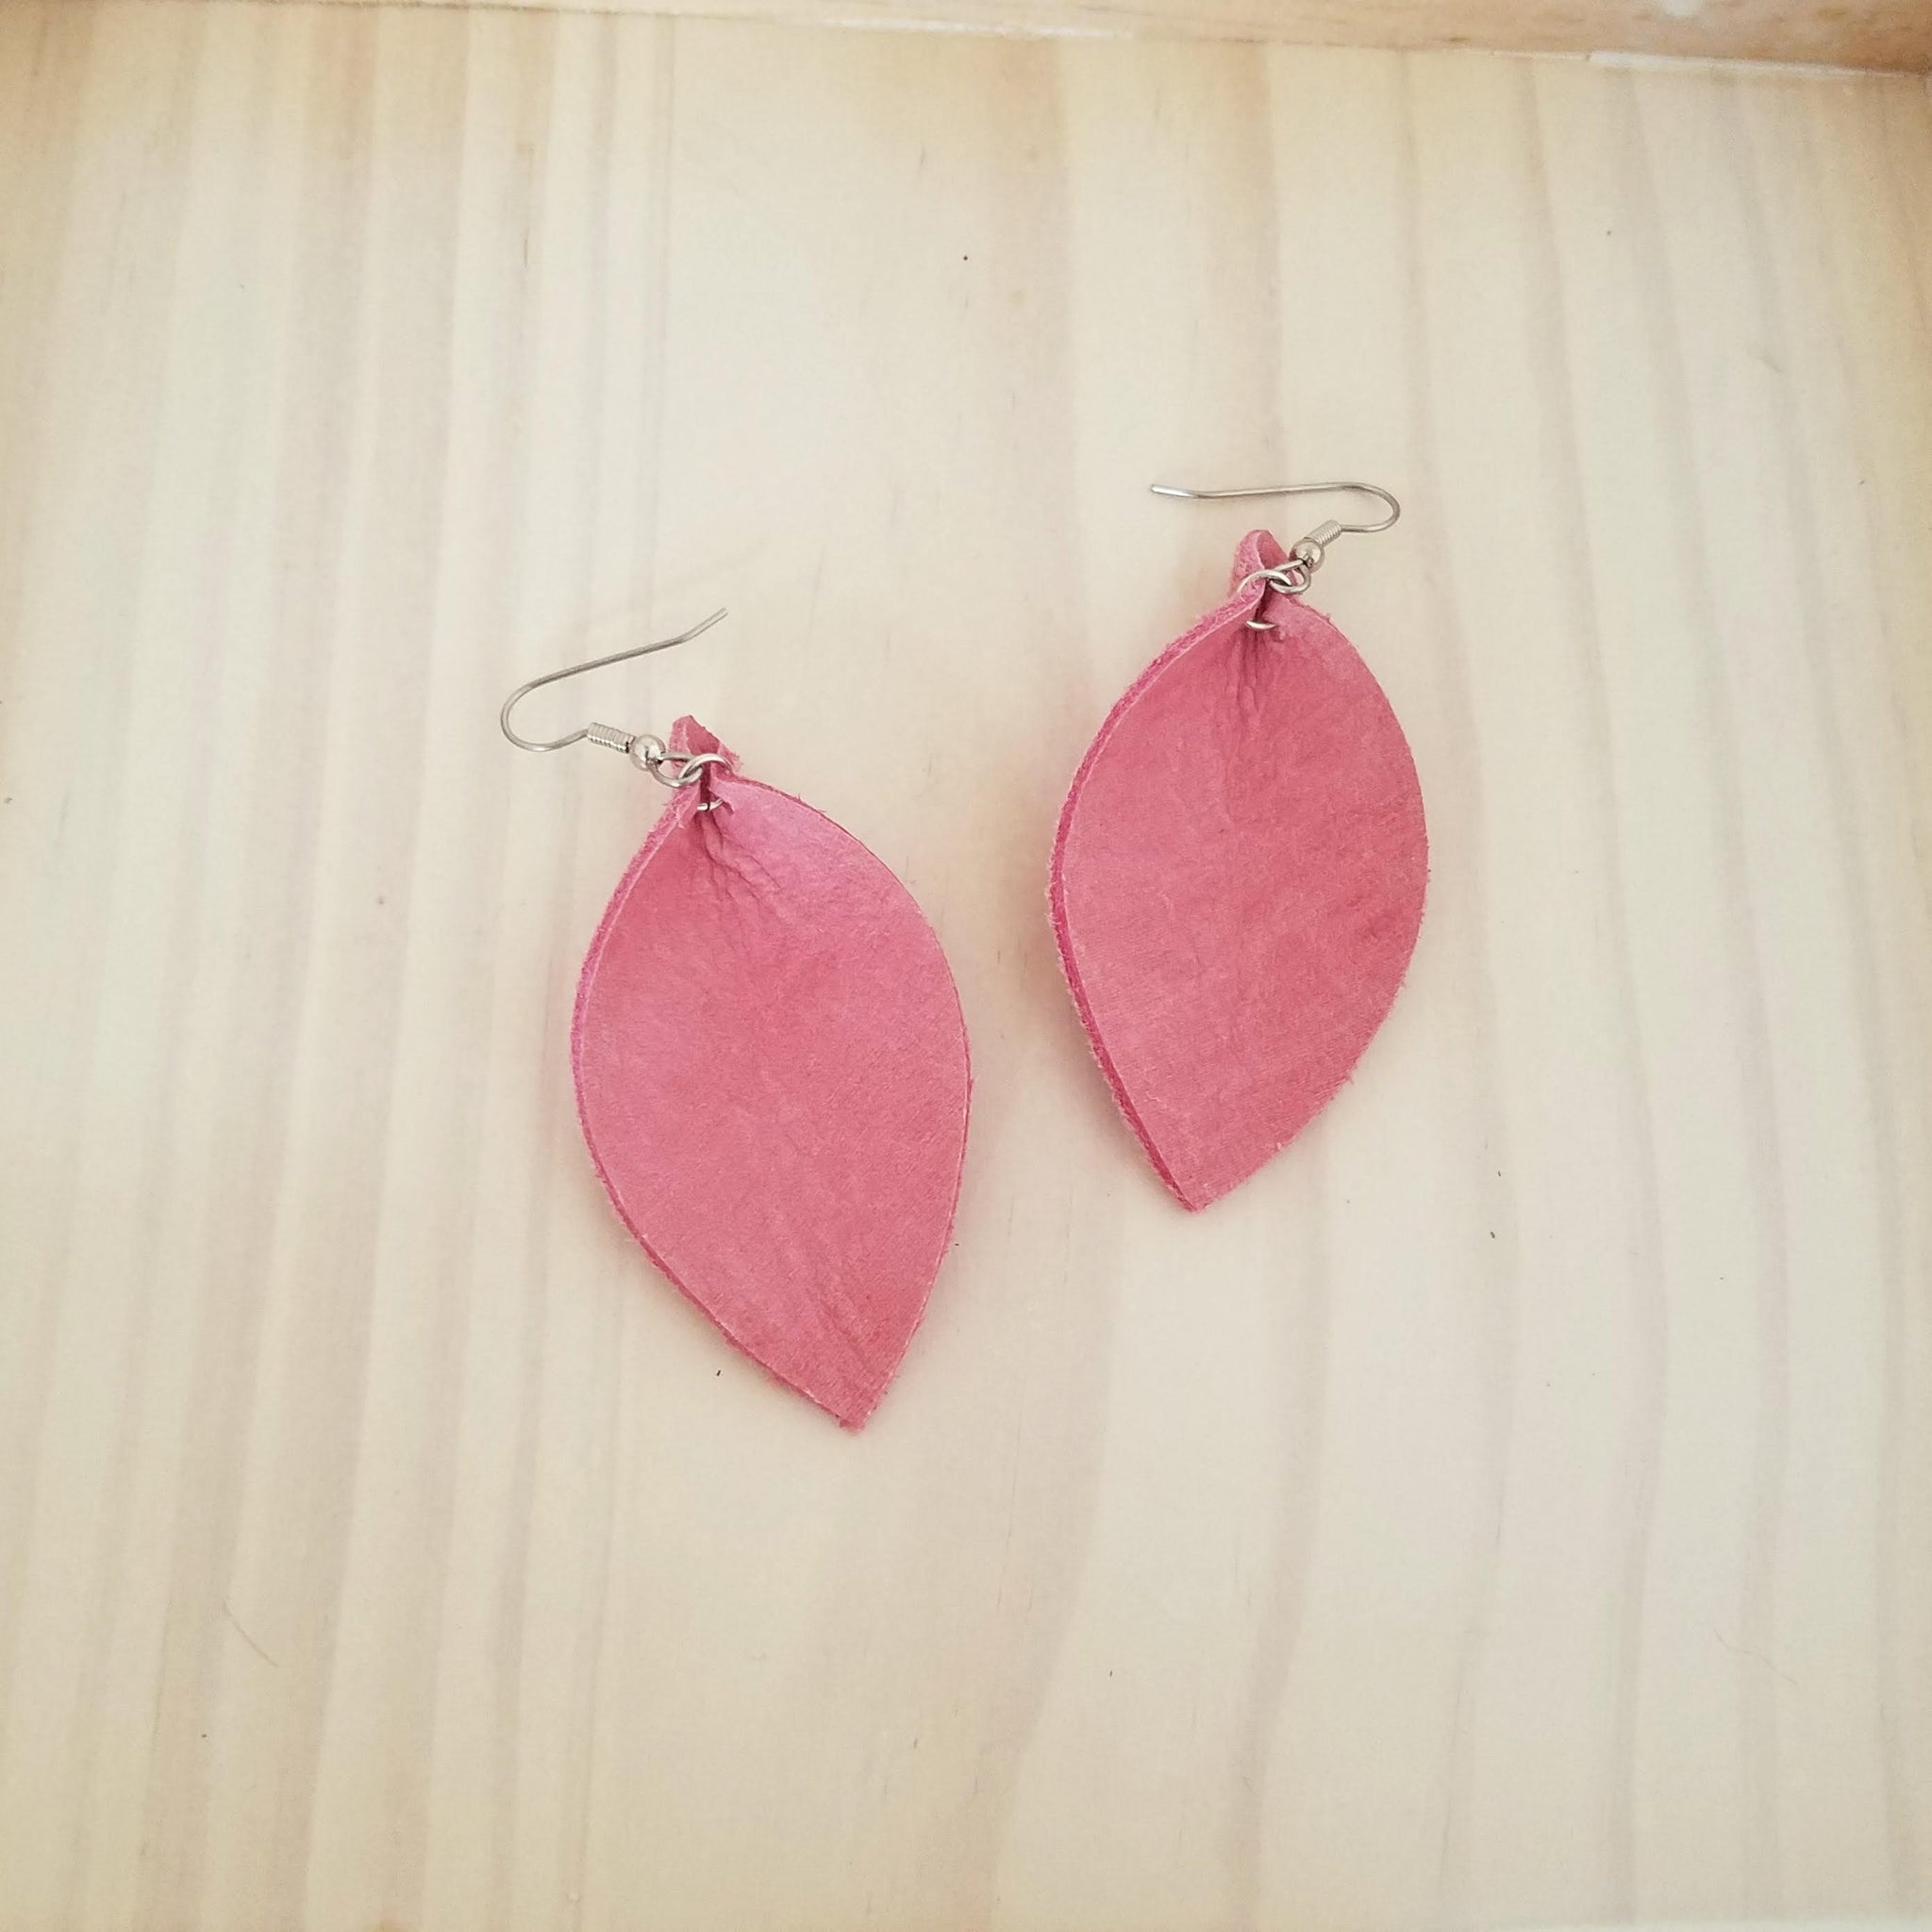 "Pink Flamingo / Leather Leaf Earrings / Medium / 2.5 x 1.25"" / Hypoallergenic / FREE SHIPPING"